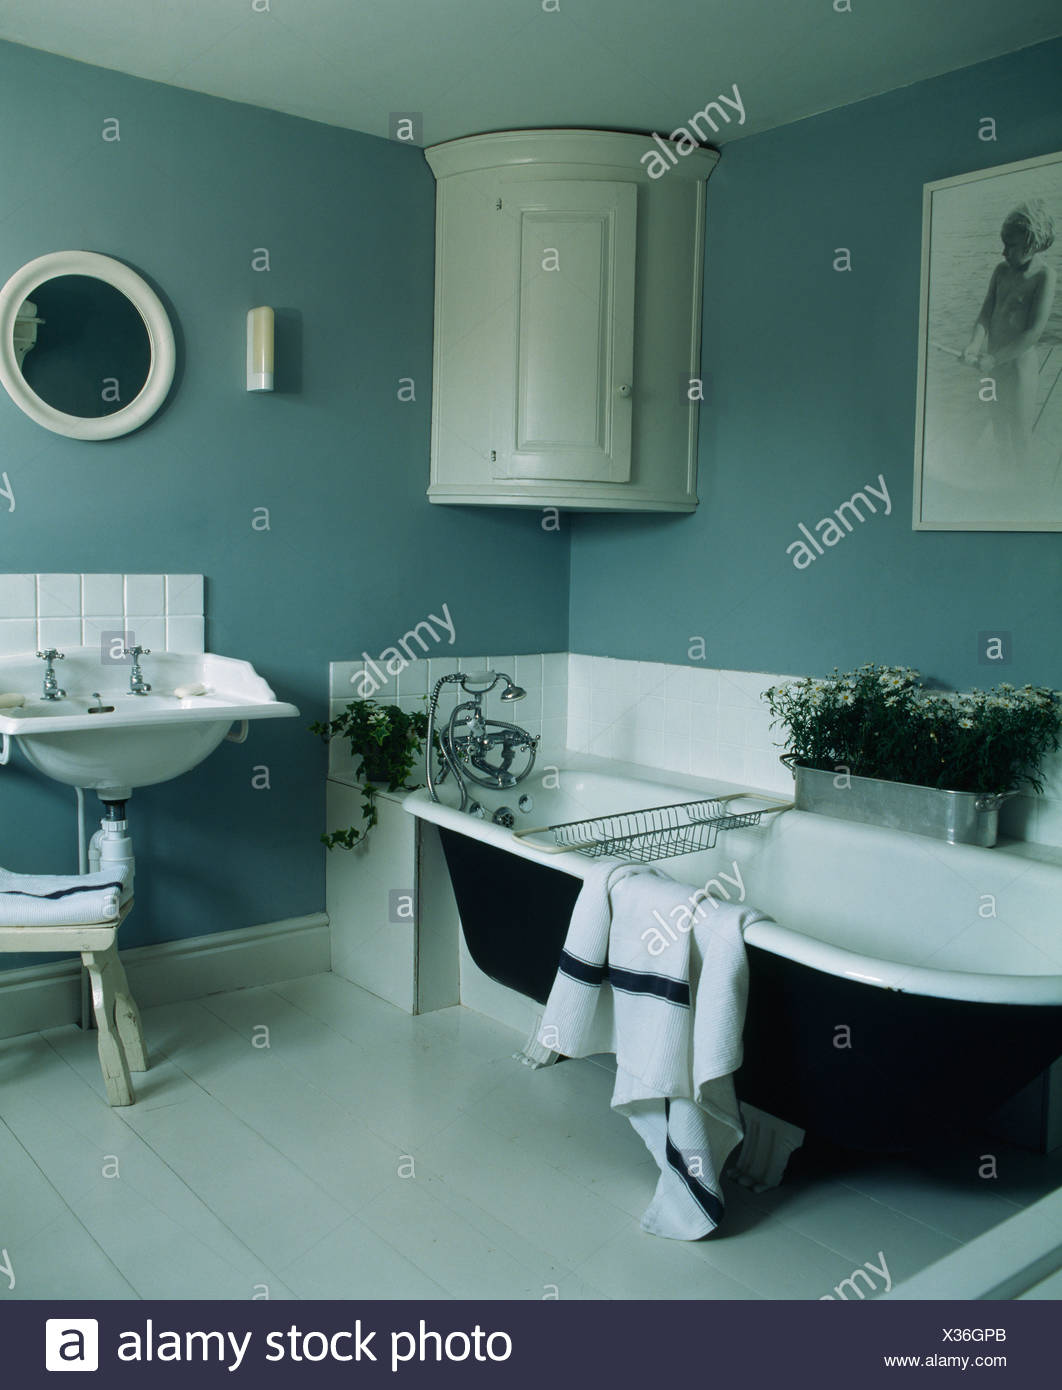 Tiled Bath In Country Bathroom Stock Photos & Tiled Bath In Country ...